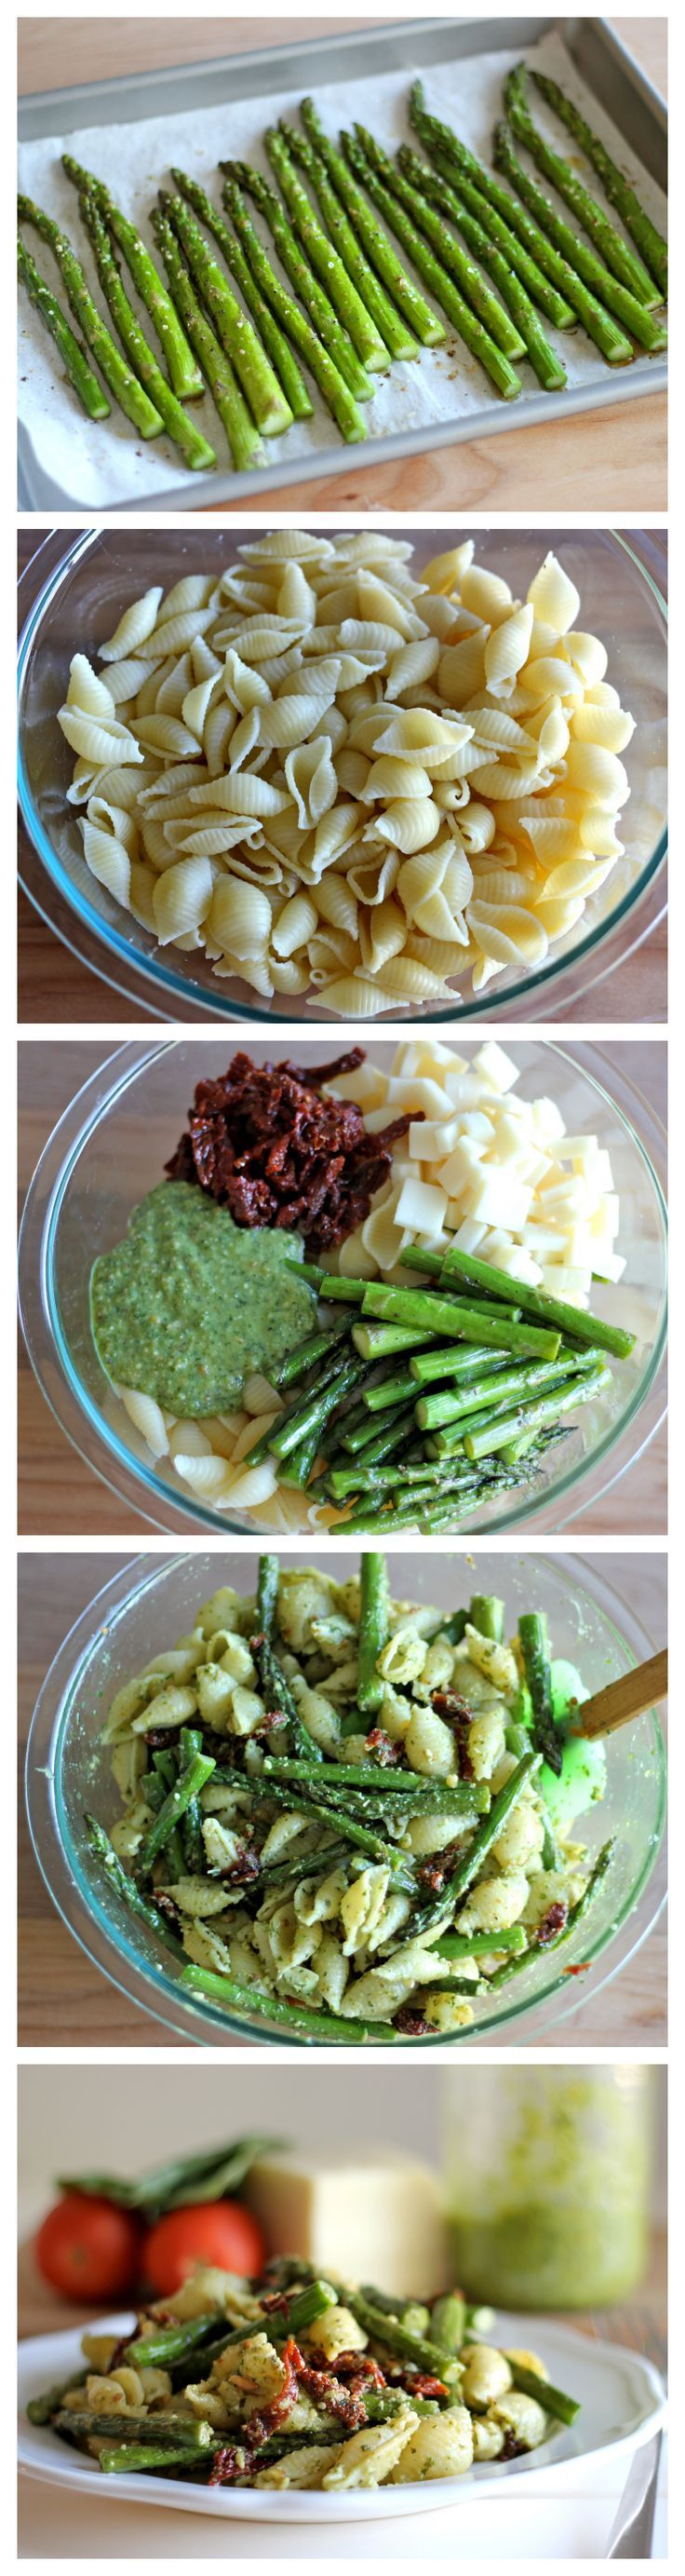 Pesto Pasta with Sun Dried Tomatoes and Roasted Asparagus - A quick and easy dish for those busy weeknights, and it's full of veggies!